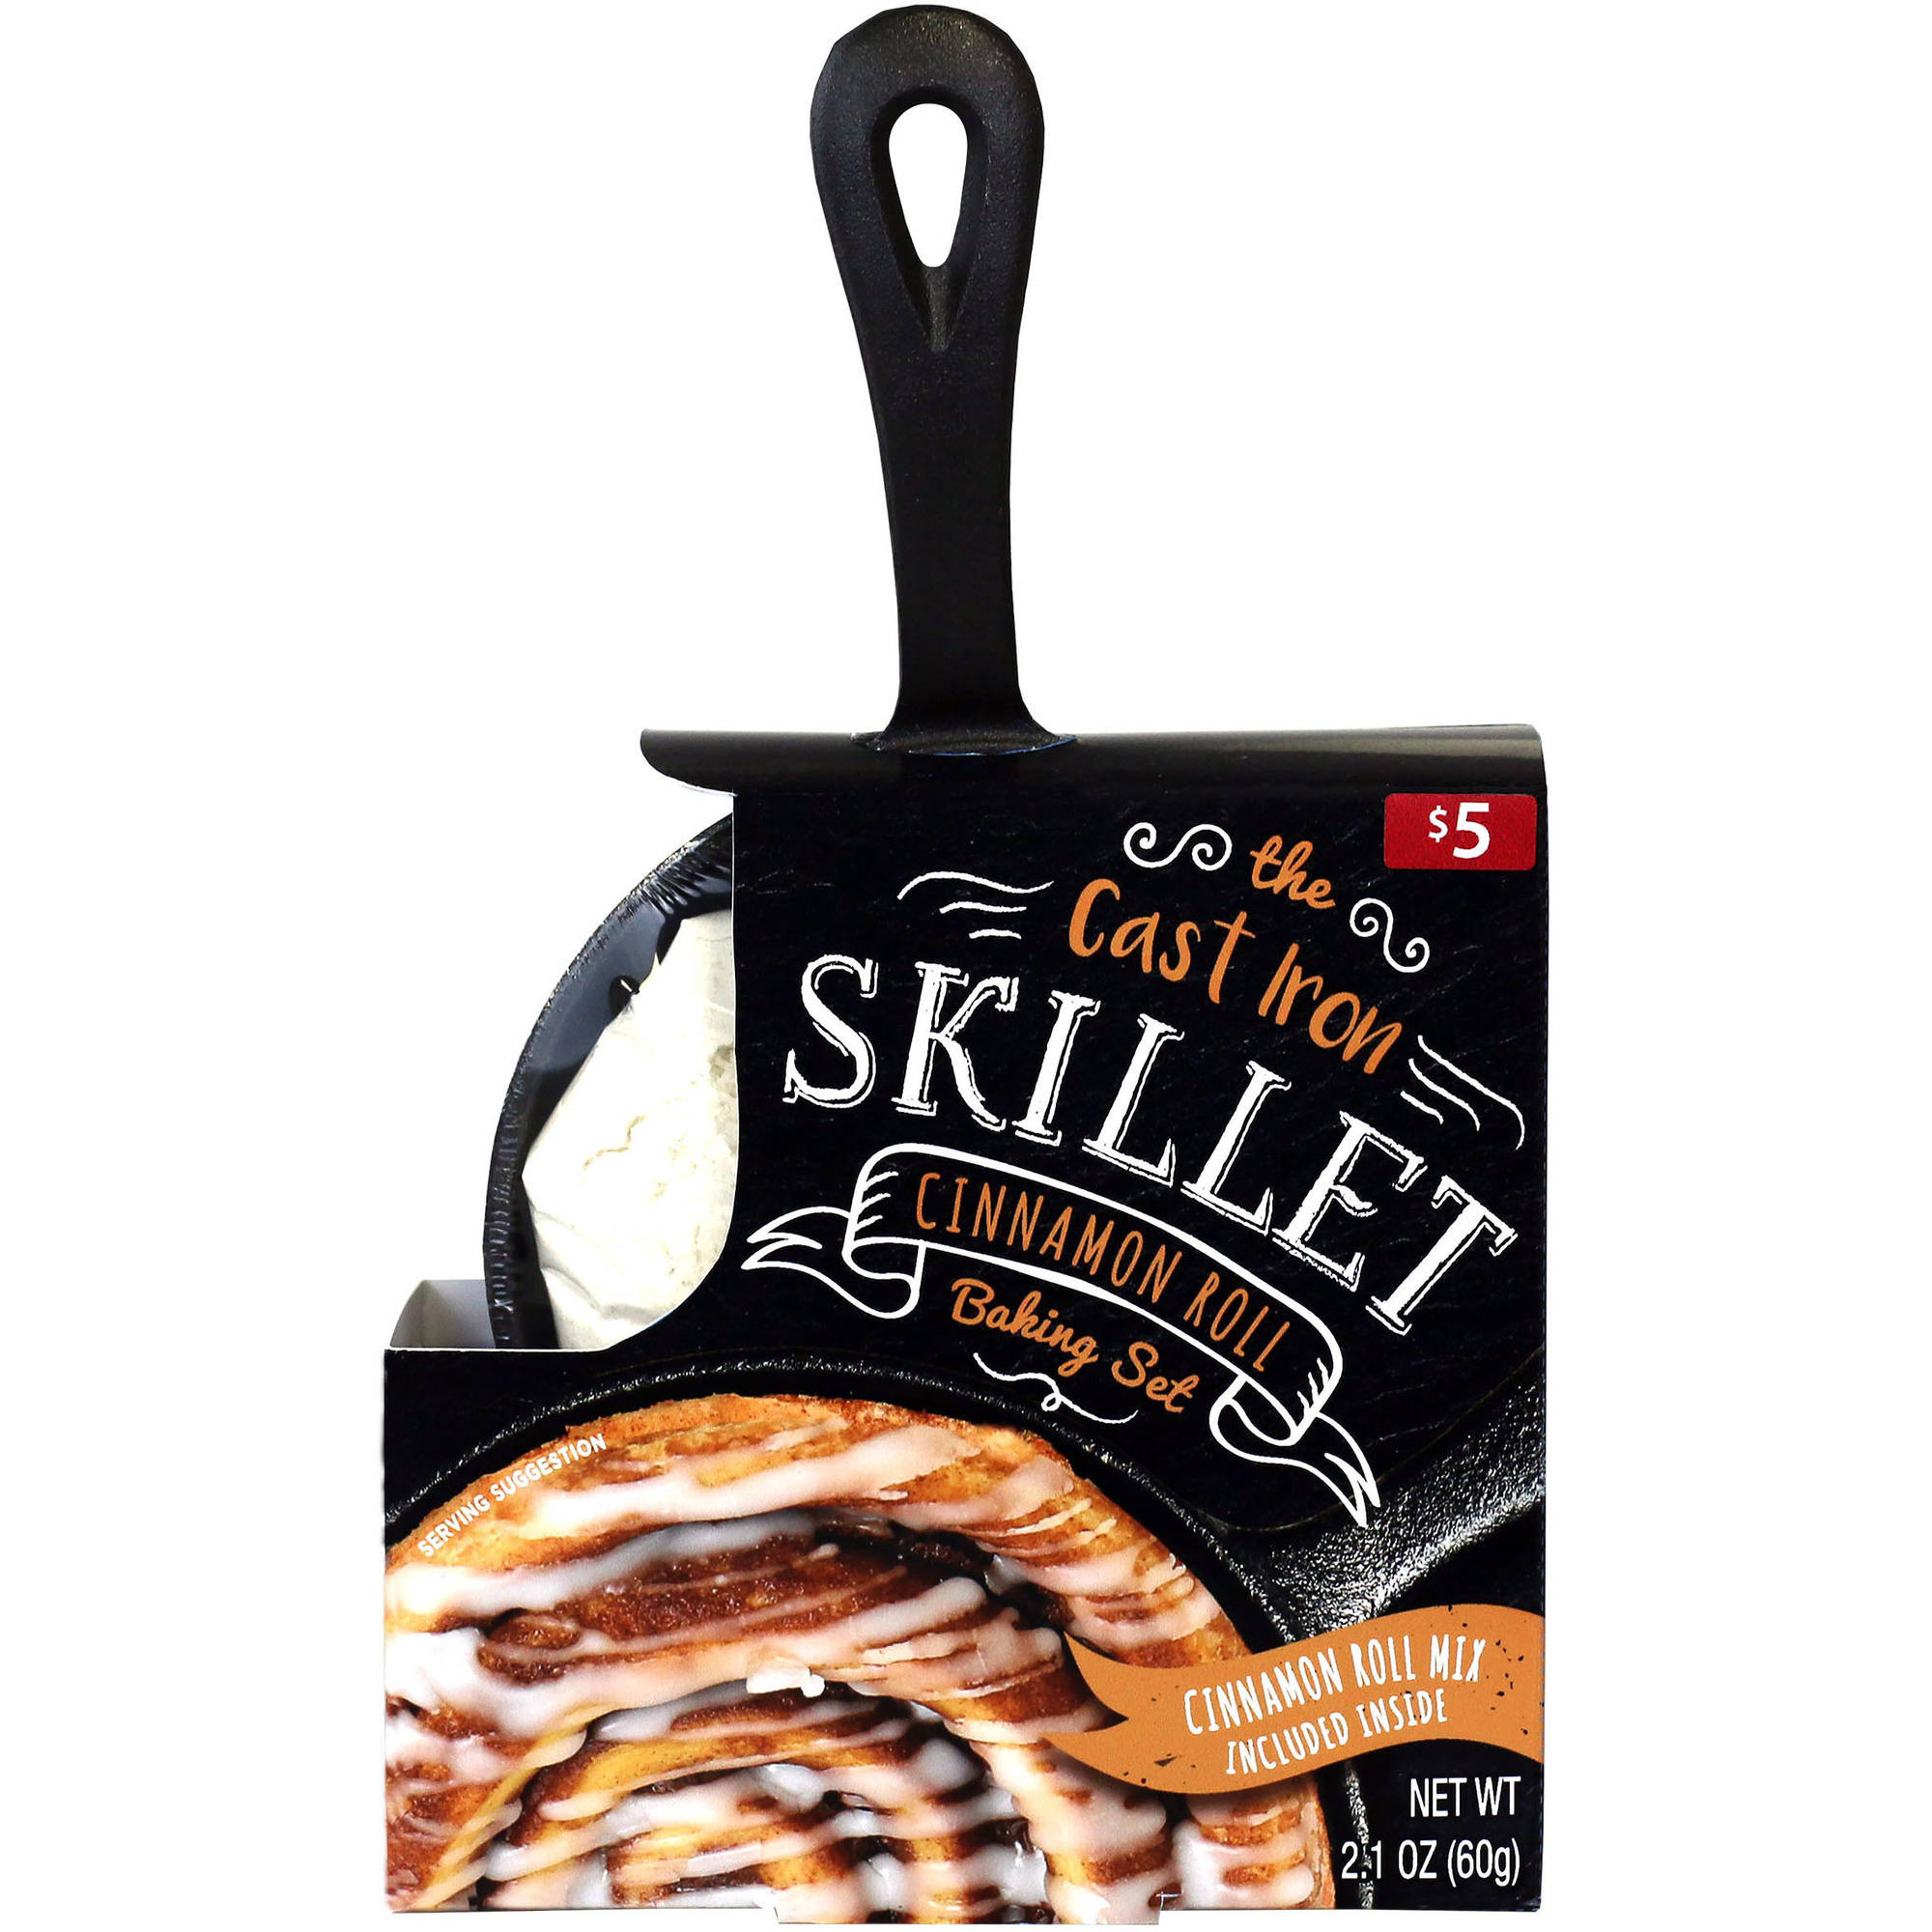 The Cast Iron Skillet Cinnamon Roll Baking Set, 2 pc